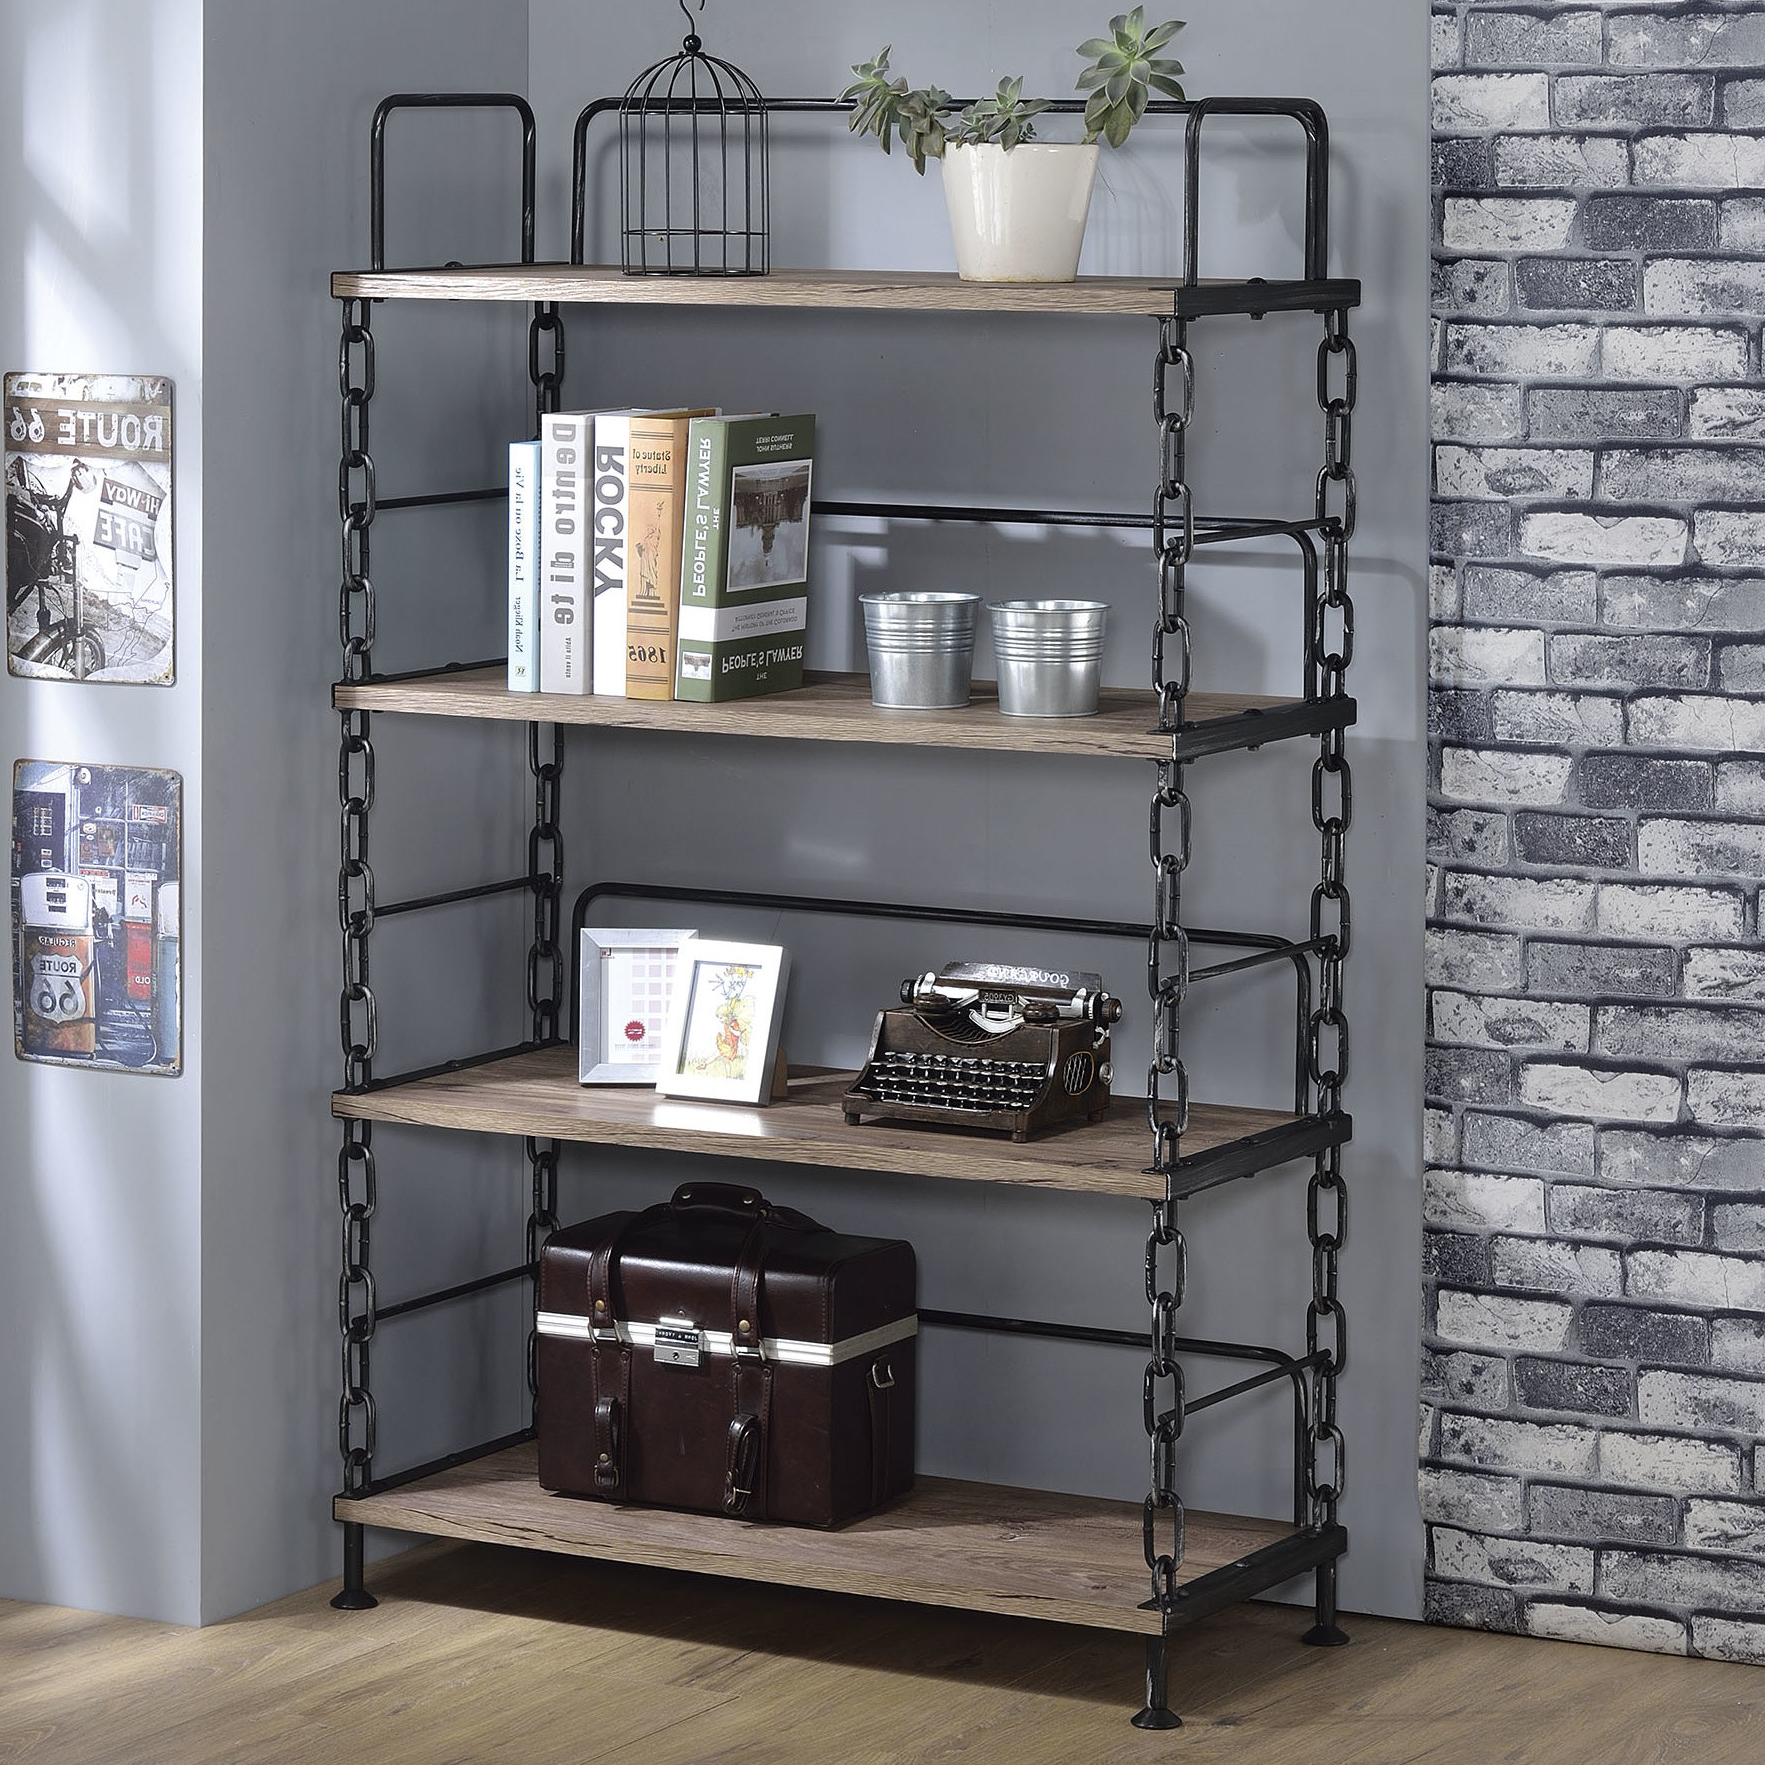 Whidden Etagere Bookcases In Widely Used Maidenhead Etagere Bookcase (View 10 of 20)